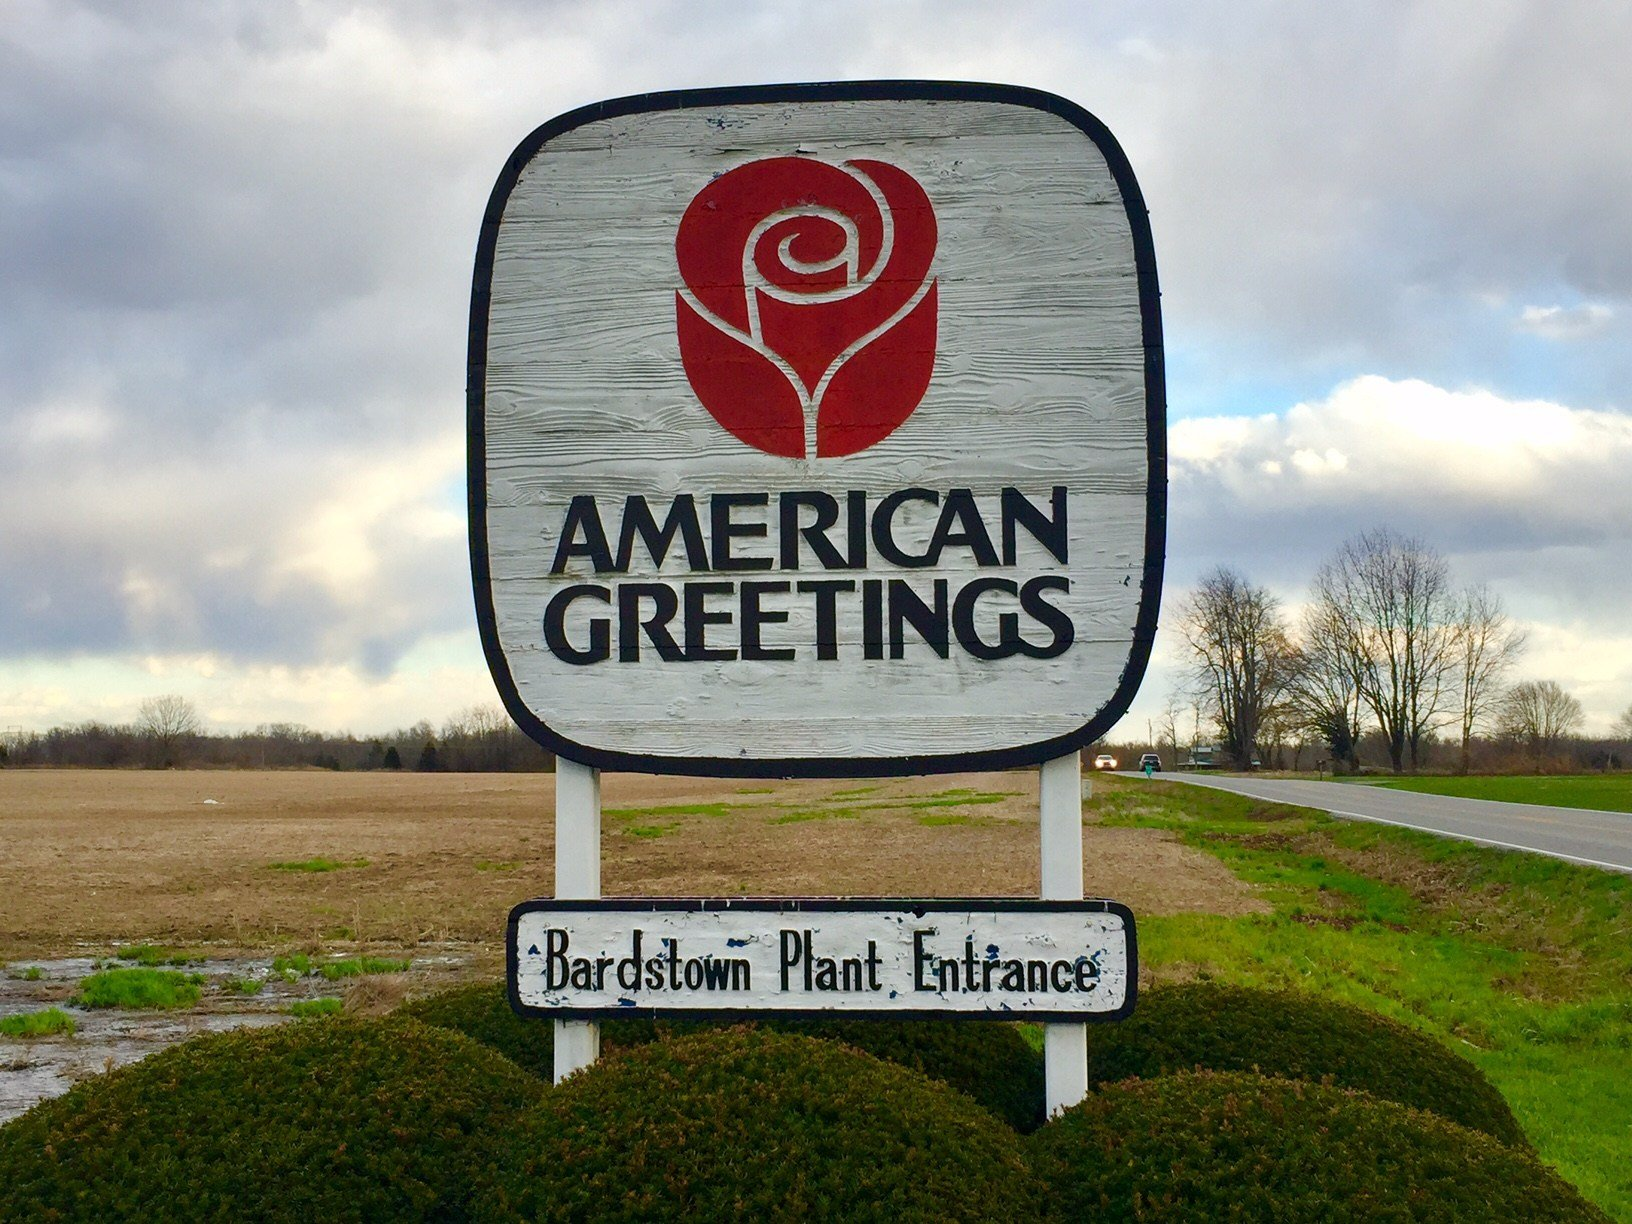 American greetings in bardstown to close laying off nearly 450 american greetings in bardstown to close laying off nearly 450 wdrb 41 louisville news kristyandbryce Choice Image